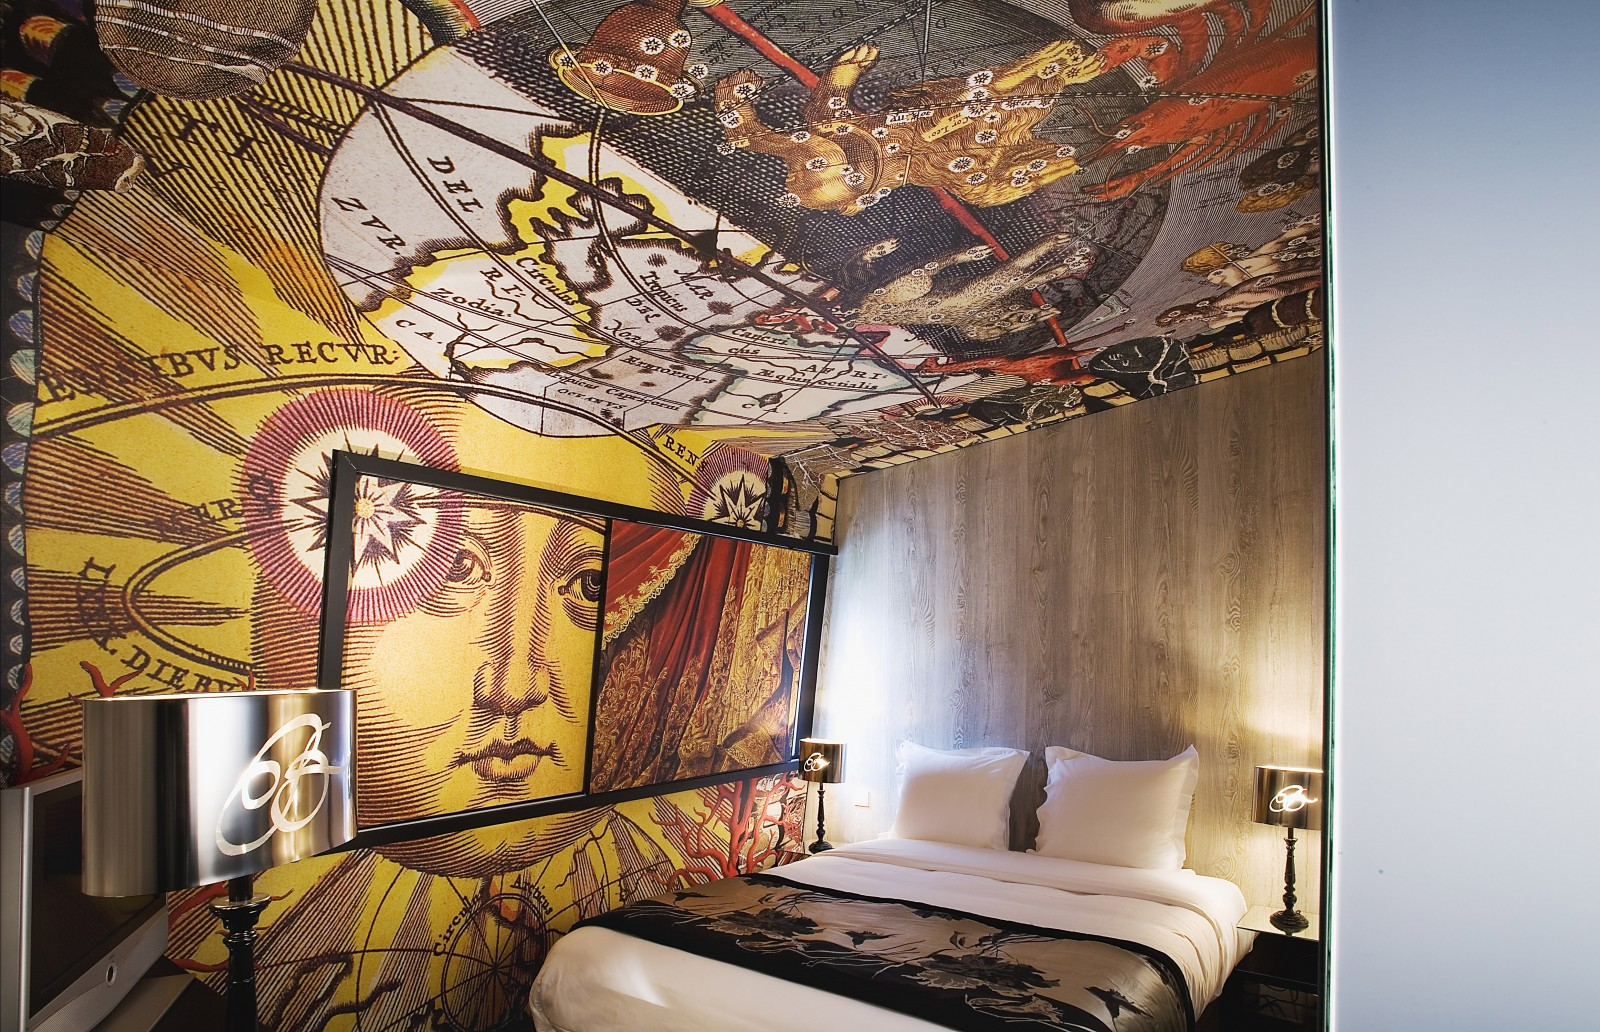 belelchasse-hotel-paris-christian-lacroix-interior-design-room